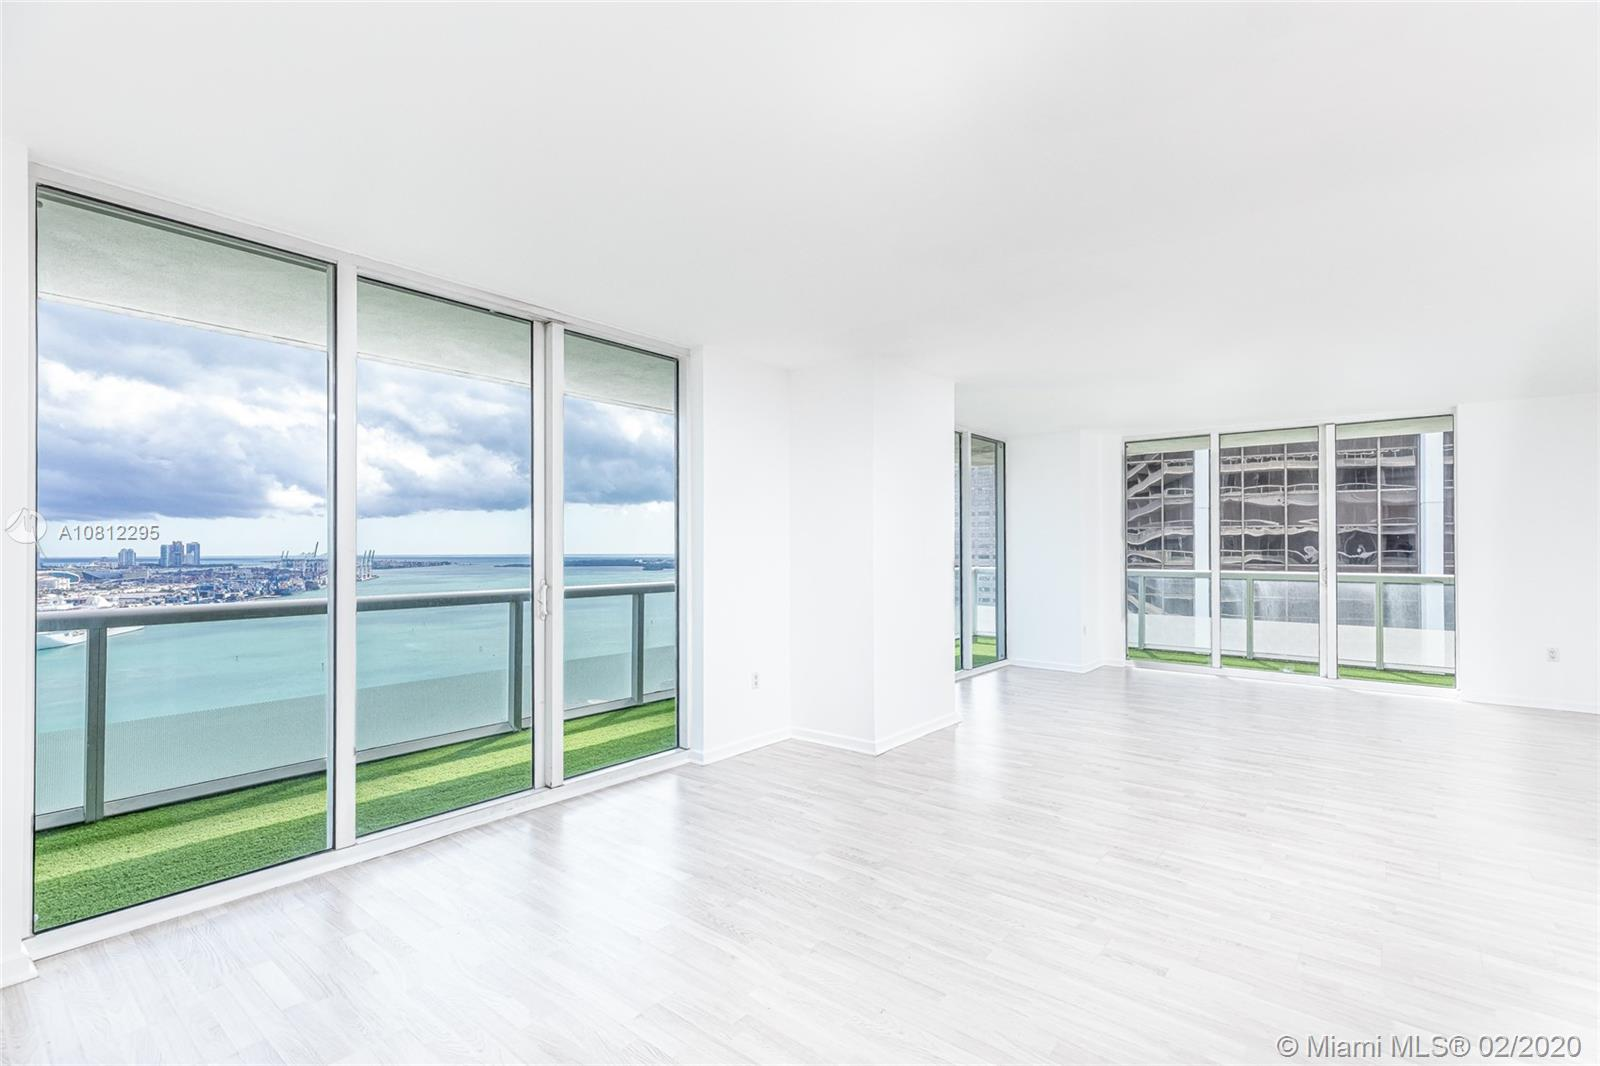 Enjoy unobstructed views of Biscayne Bay, Port of Miami and Miami Beach from the L-shaped balcony. This is your chance to live in 50 Biscayne at a reasonable price. Pre-wired smart building boasts a spa, meditation room, pool and fitness center among other amenities. CURRENTLY RENTED AT $3700 UNTIL 10/01/2021